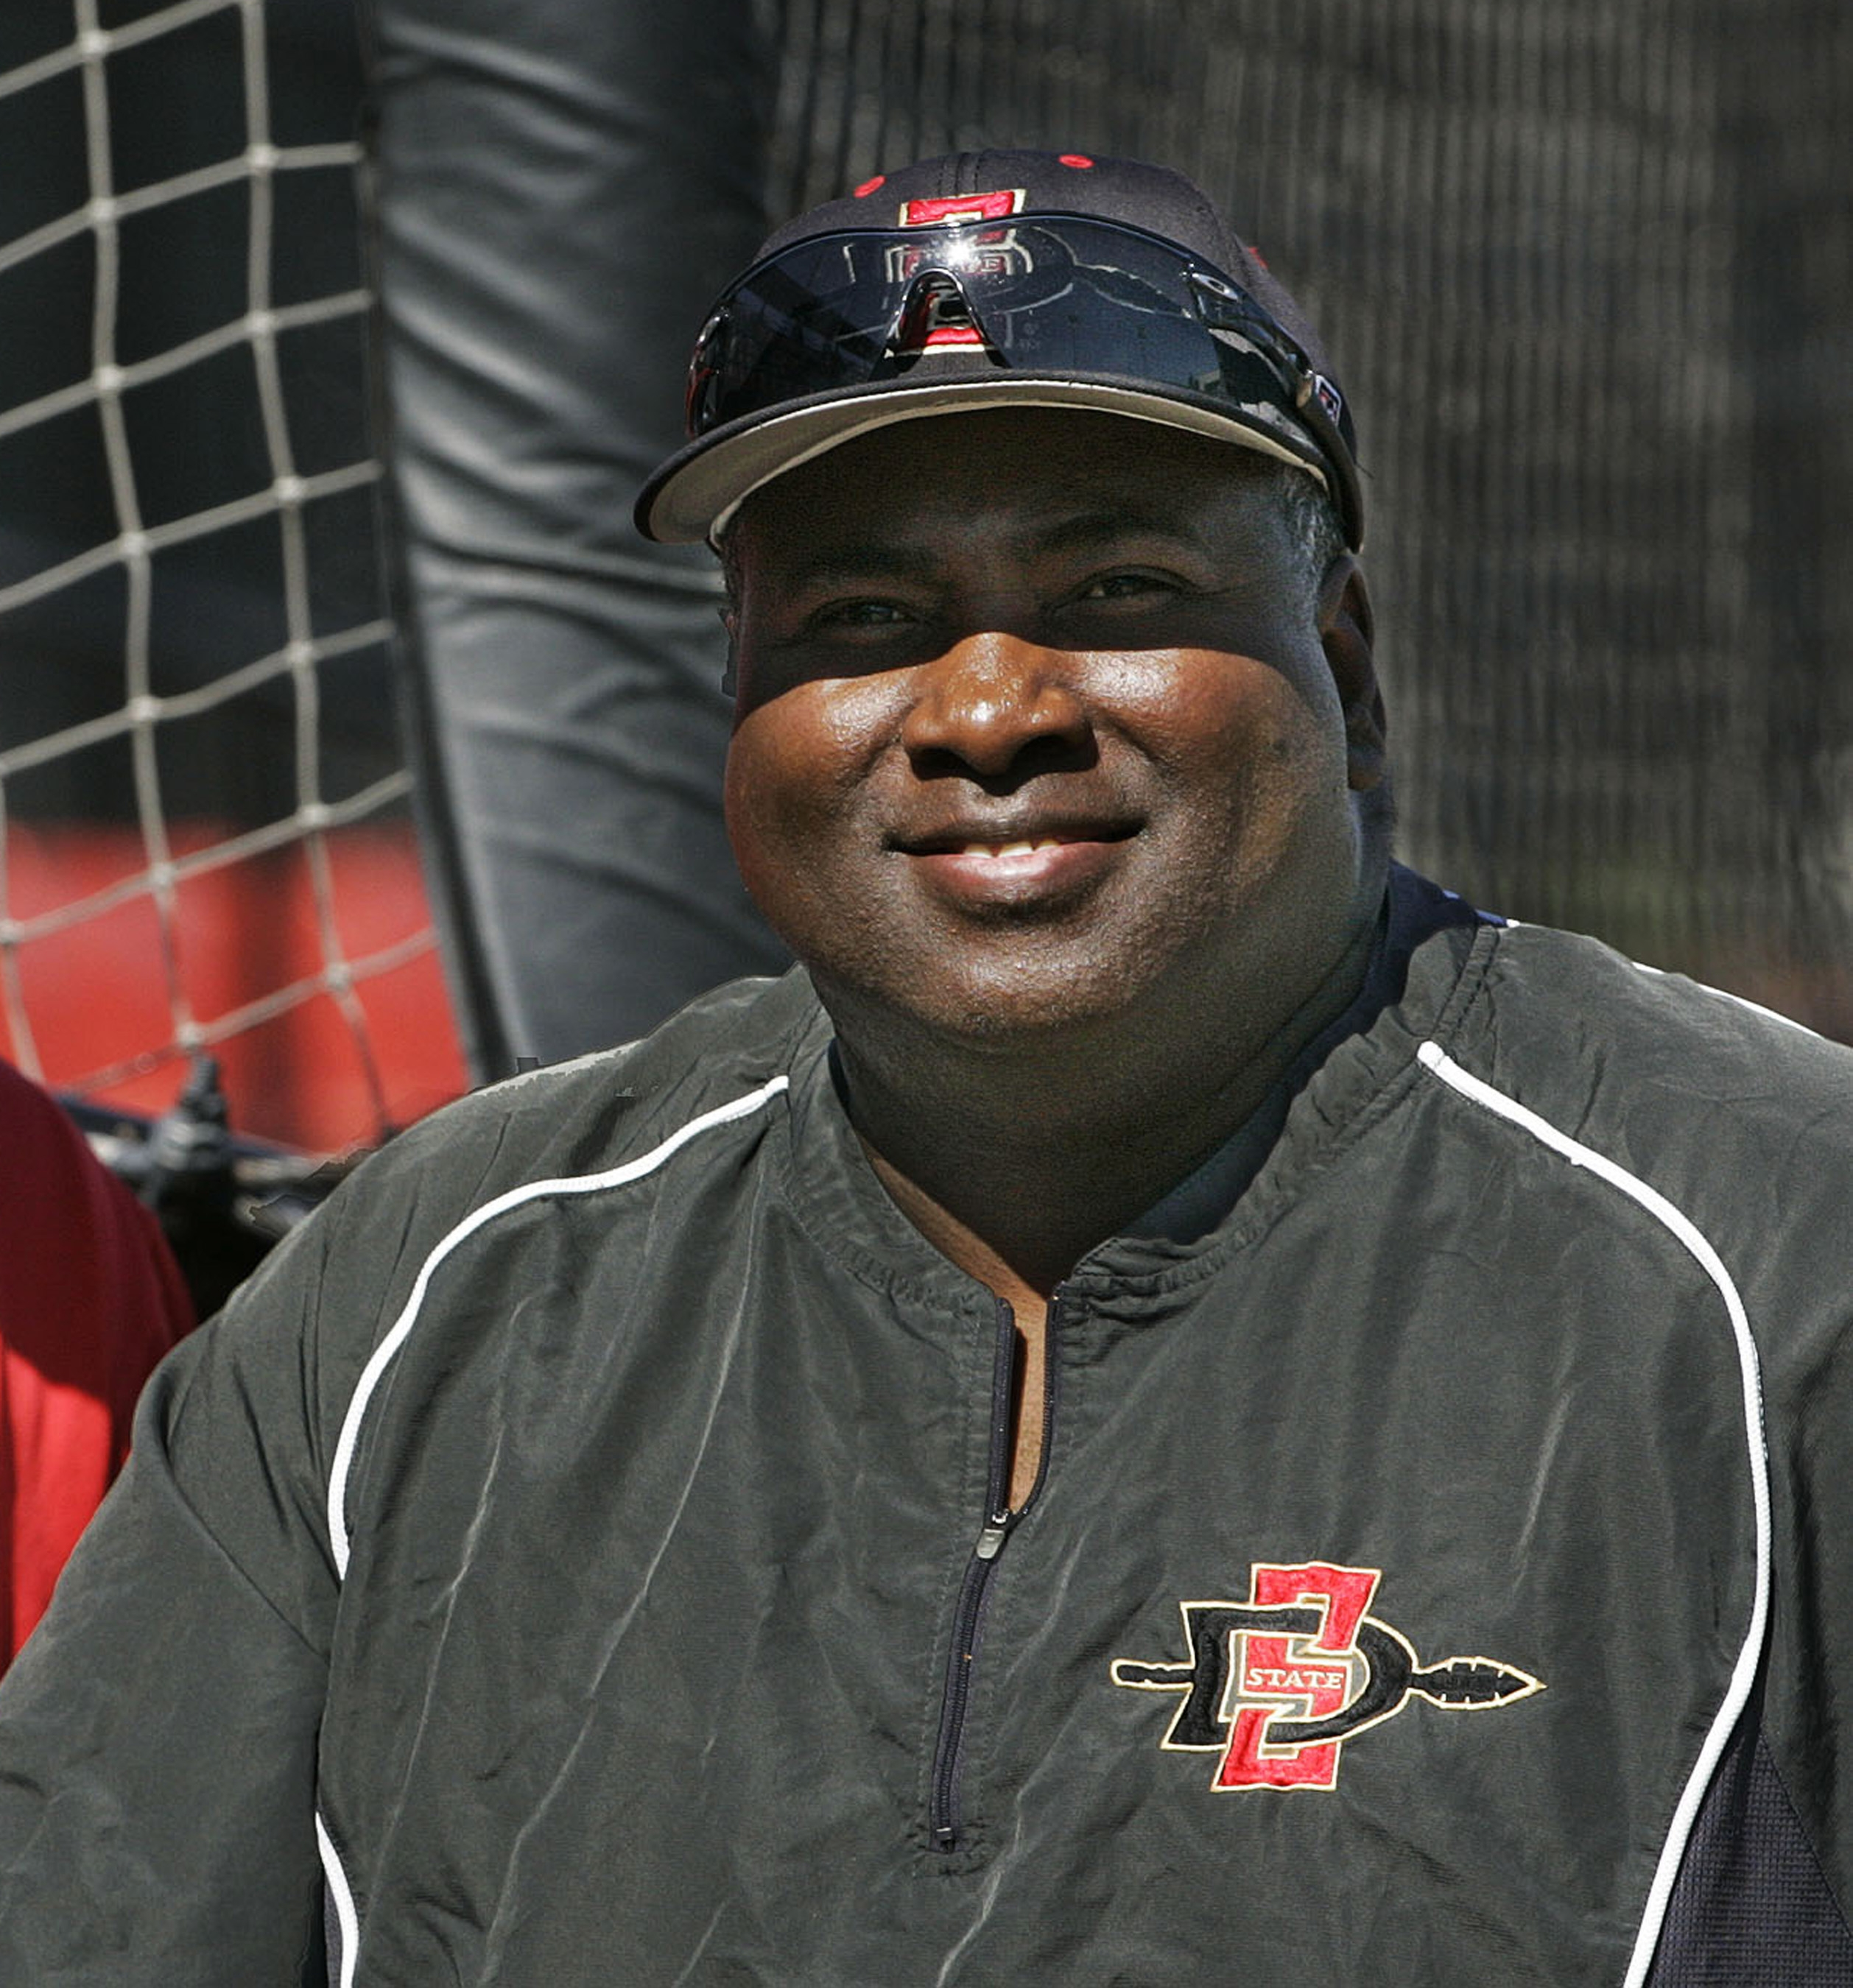 FILE - This Feb. 18, 2009, file photo shows San Diego State baseball coach and Hall of Fame baseball player Tony Gywnn, posing at the team's field, in San Diego. Gwynn says he has cancer in a salivary gland. He told The San Diego Union-Tribune, in a story